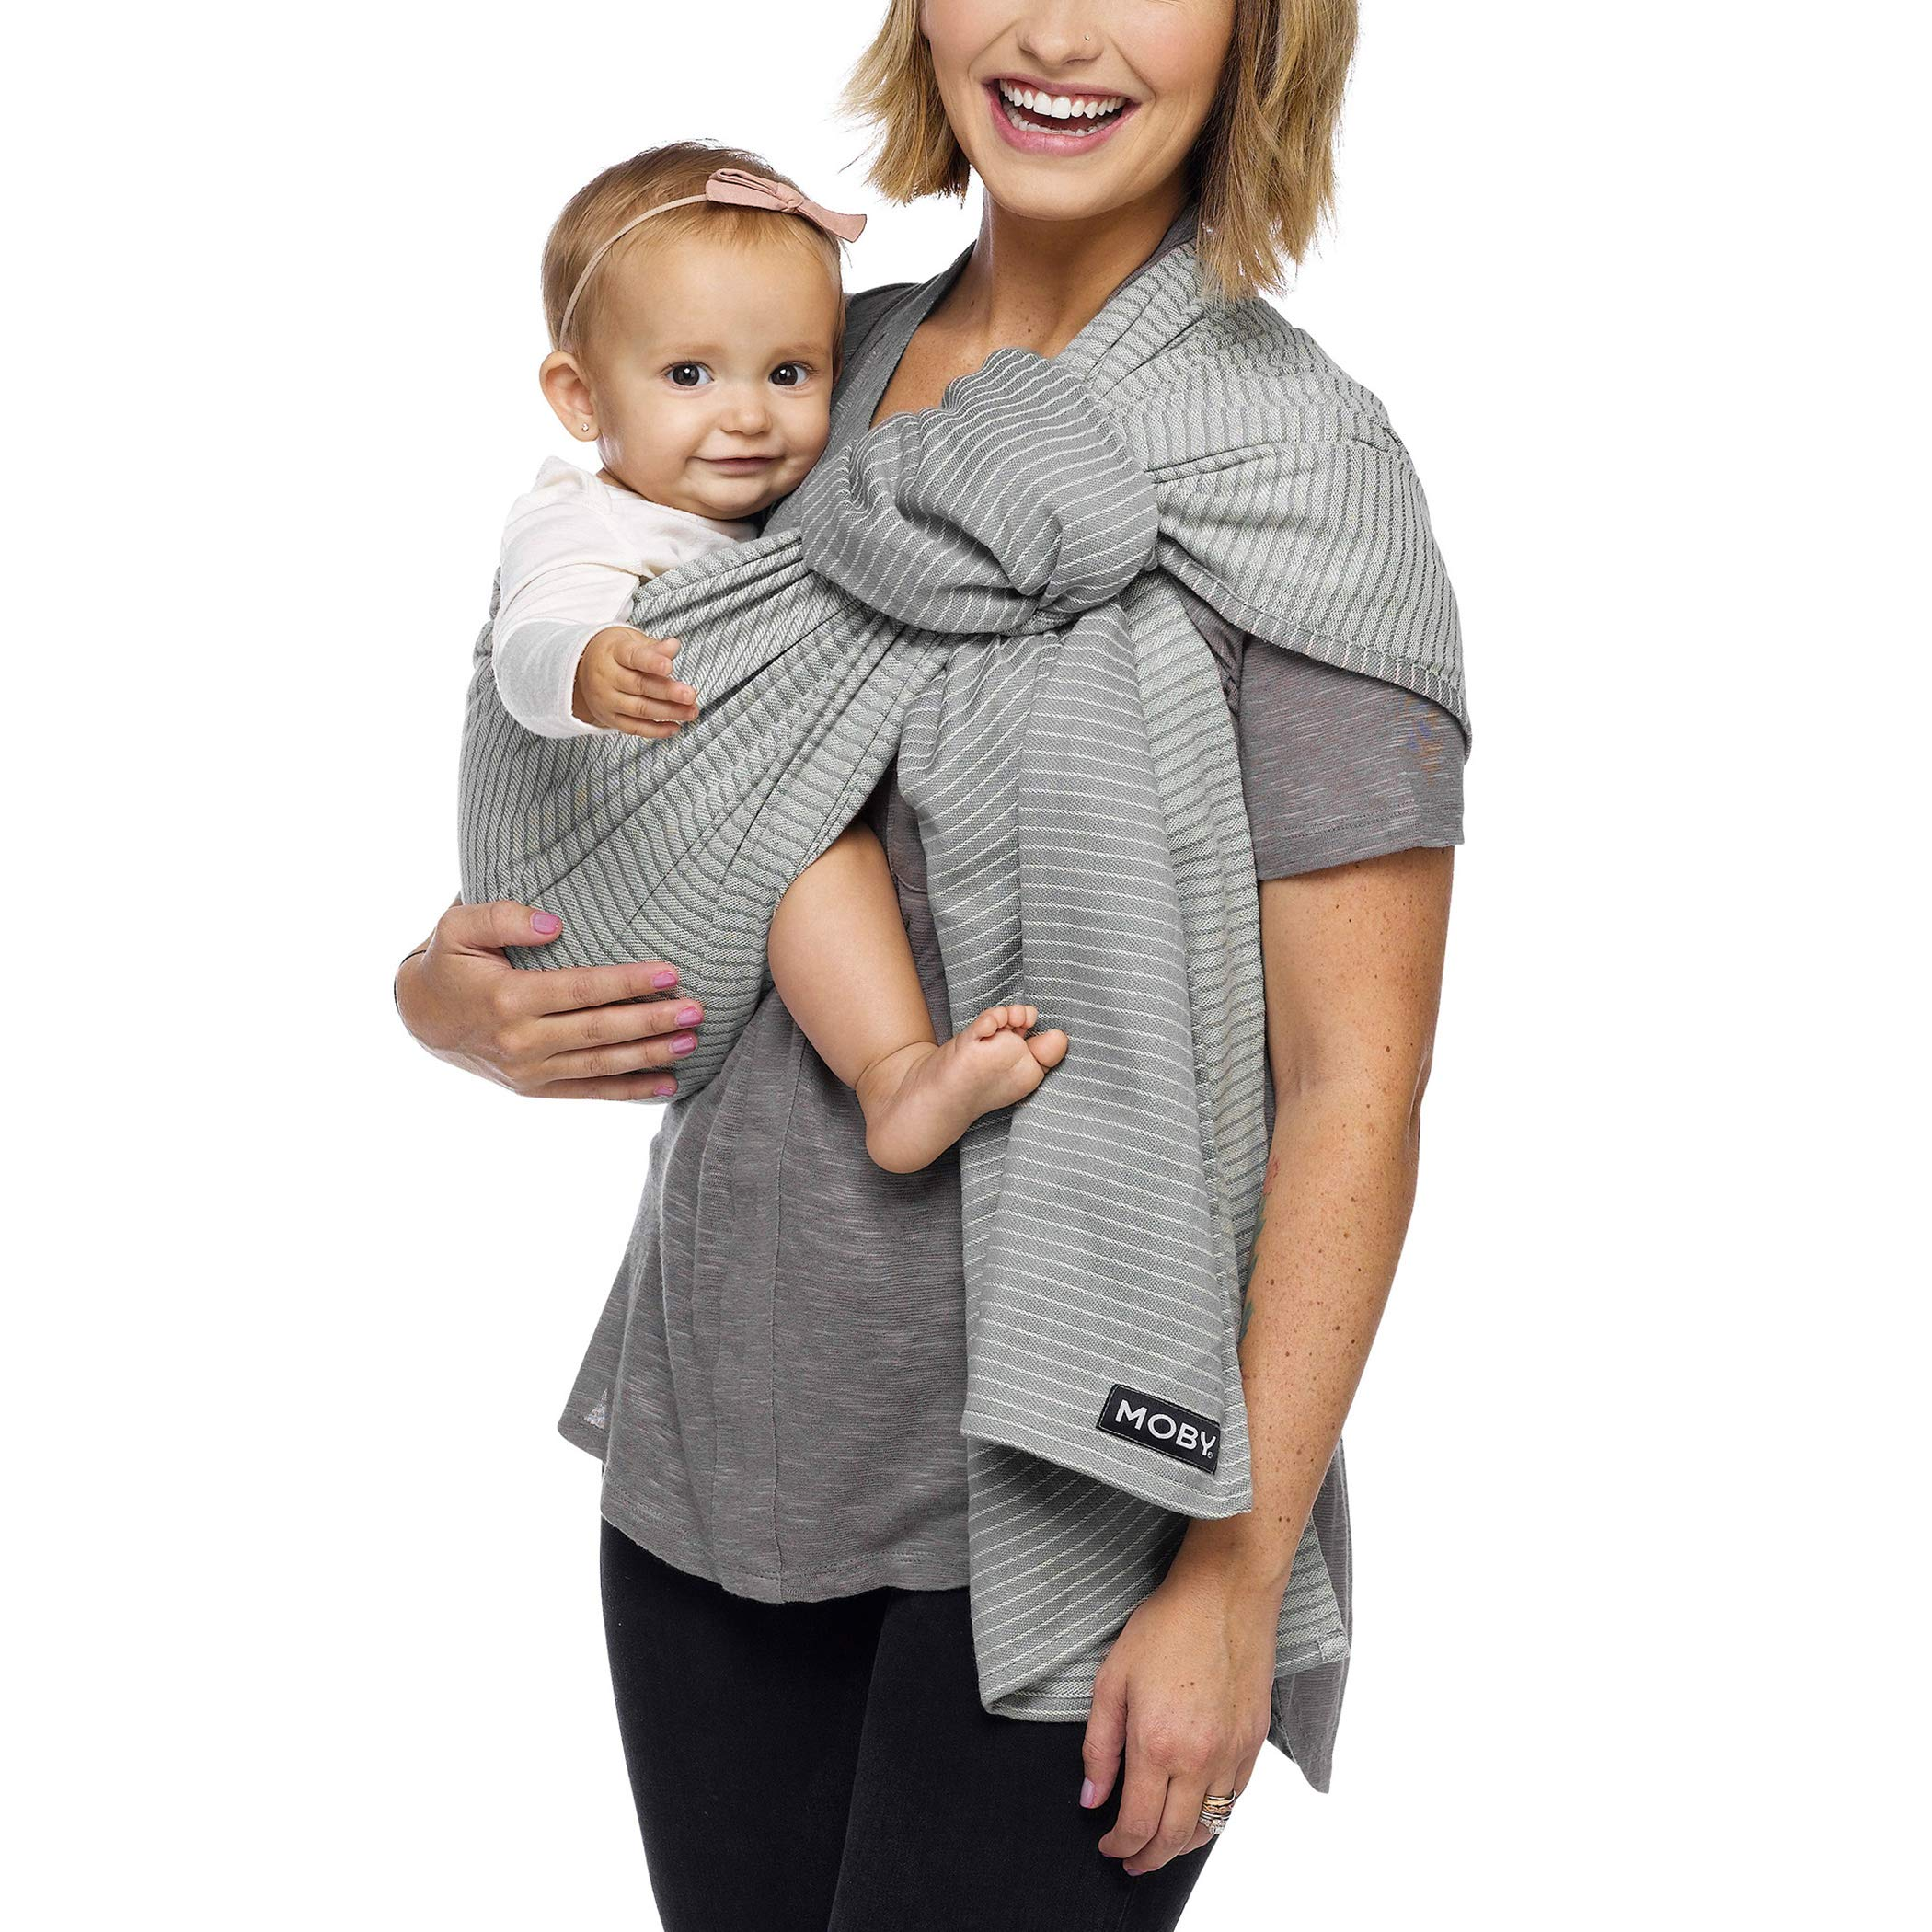 1120560aaaa Moby Ring Sling Baby Carrier (Silver Streak) - Ring Sling Carrier For  Babywearing -